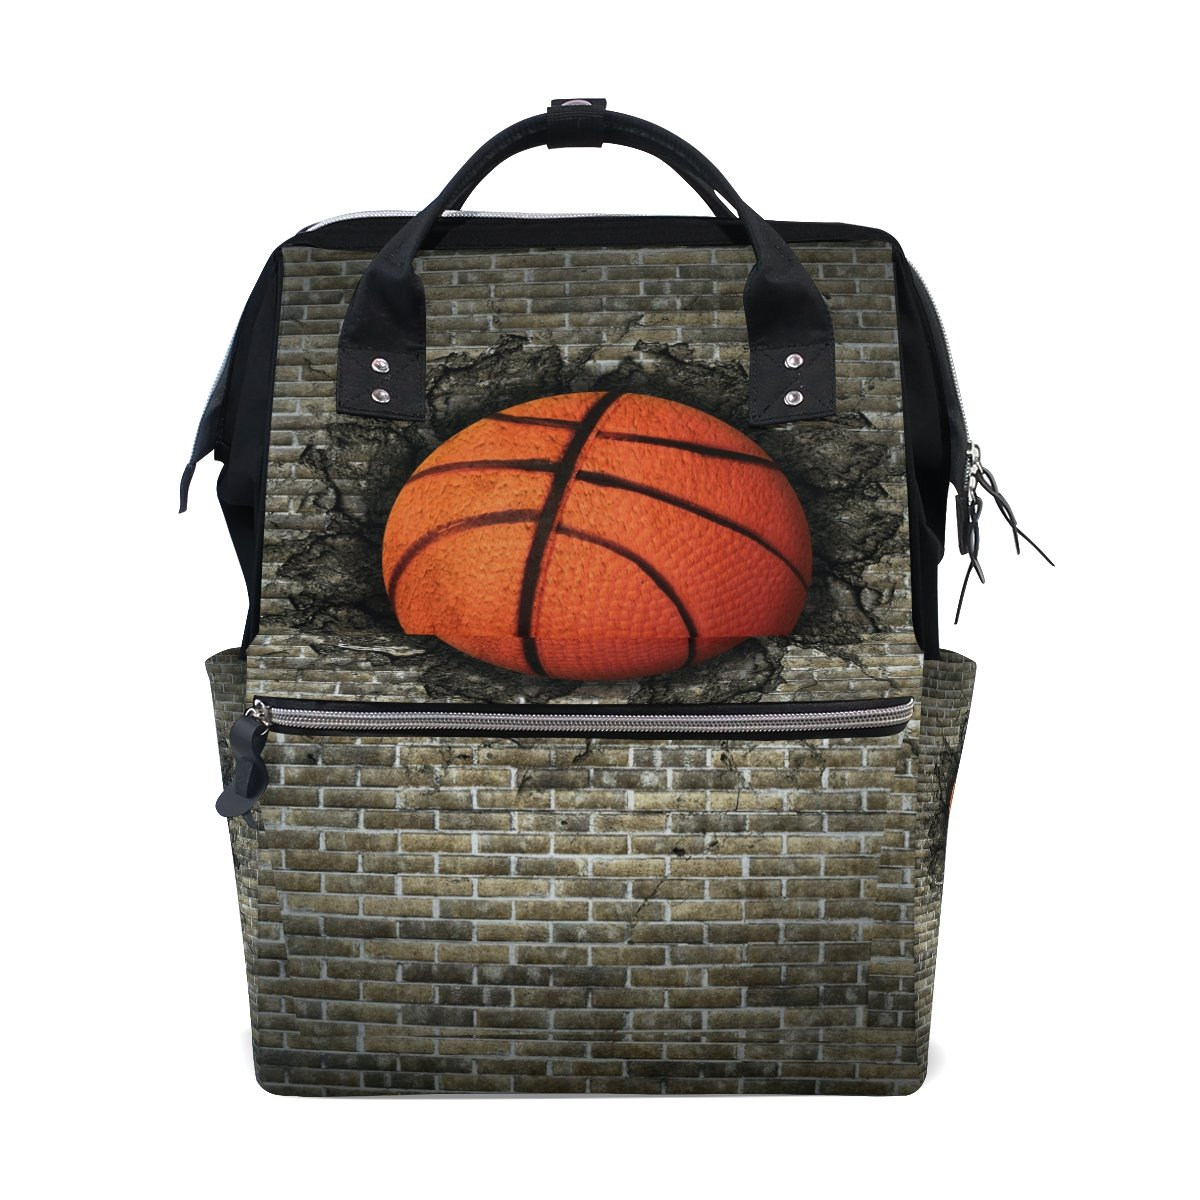 WOZO Basketball Embedded in Brick Wall Multi-function Diaper Bags Backpack Travel Bag